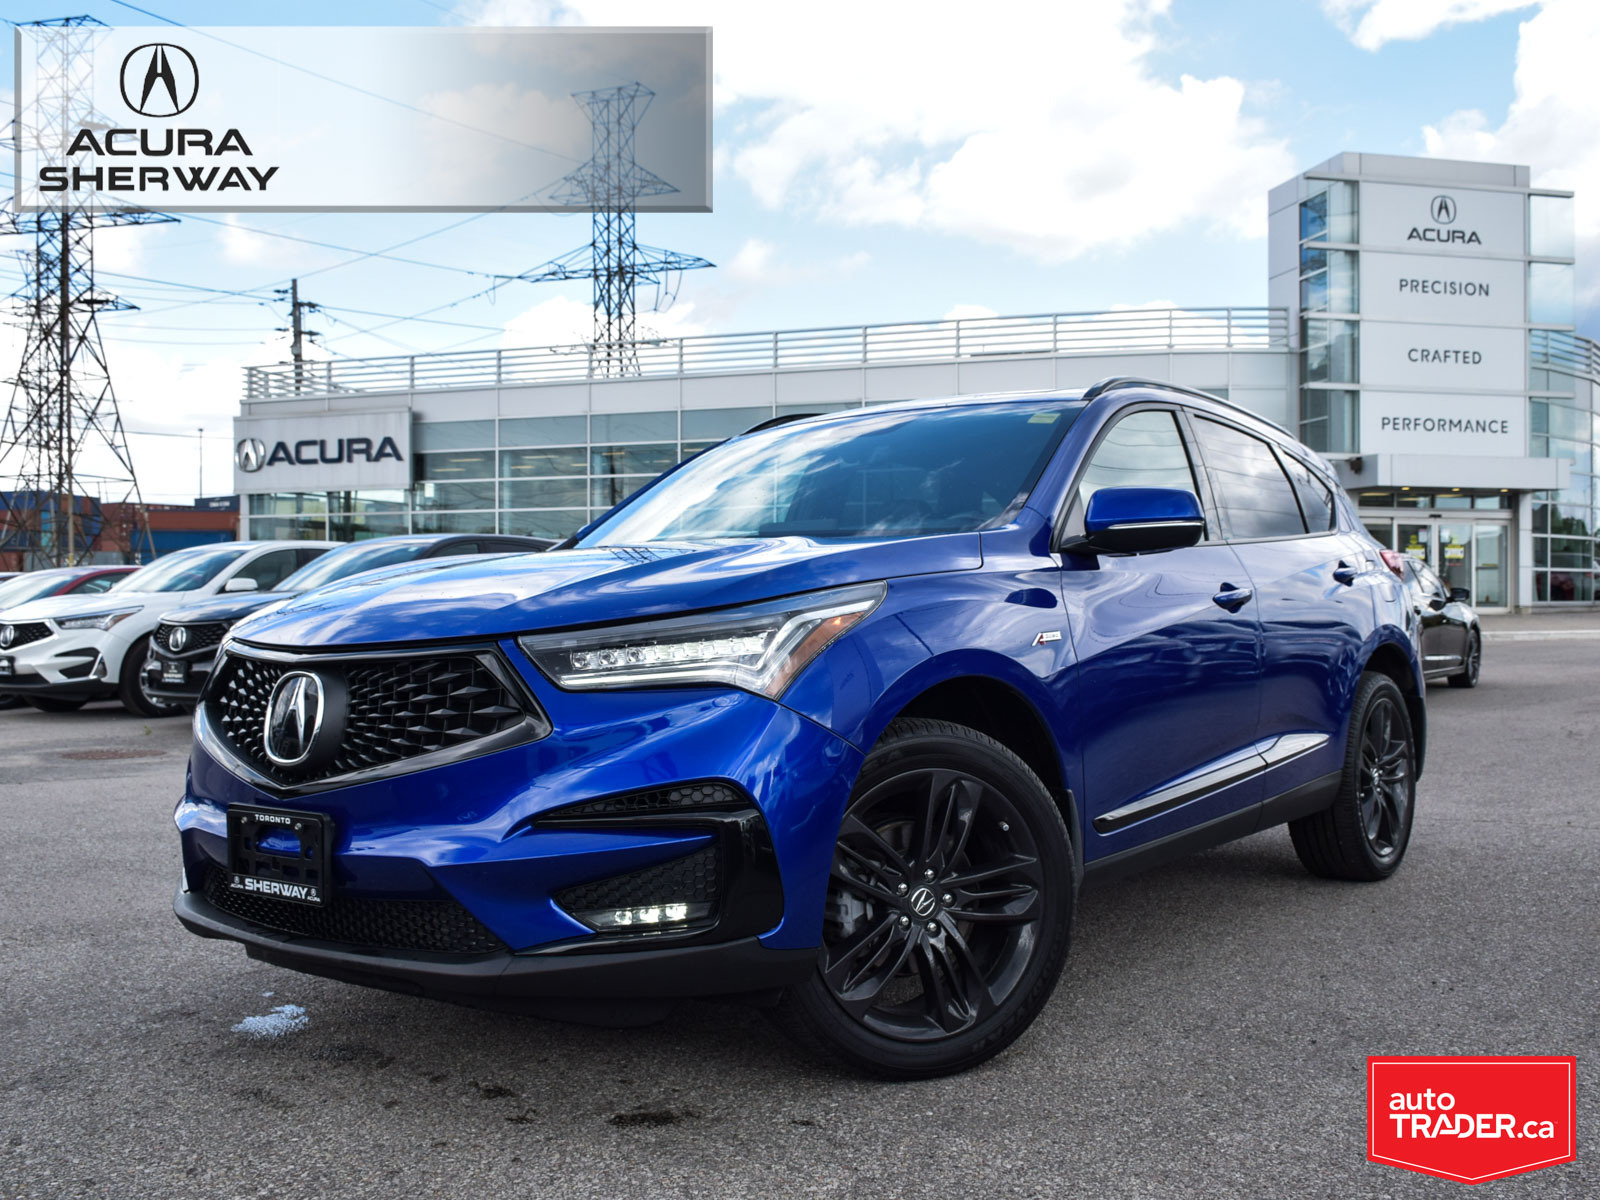 Certified Pre-Owned 2019 Acura RDX A-Spec at